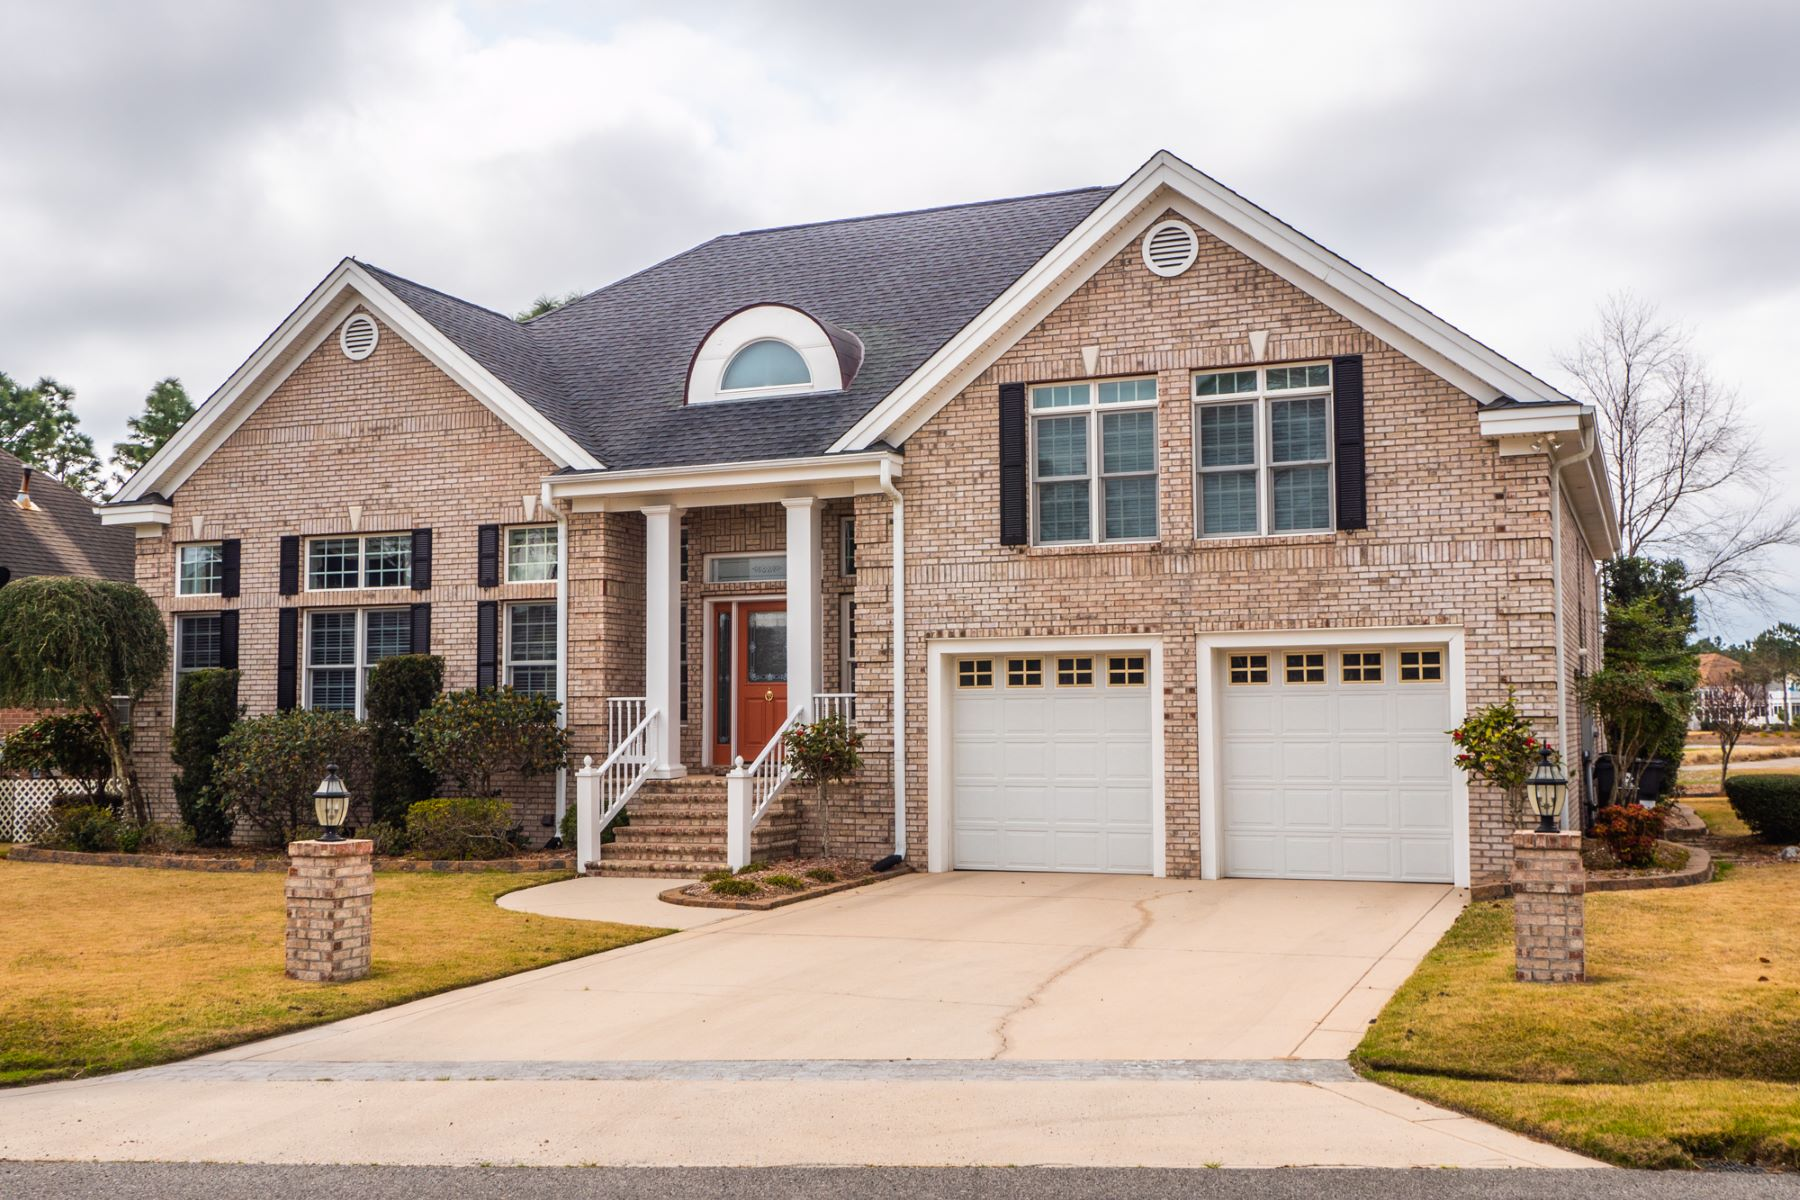 Single Family Home for Active at Custom Built Brick Home Overlooking Signature Hole on Golf Course 3561 Sanderling Drive SE Southport, North Carolina 28461 United States